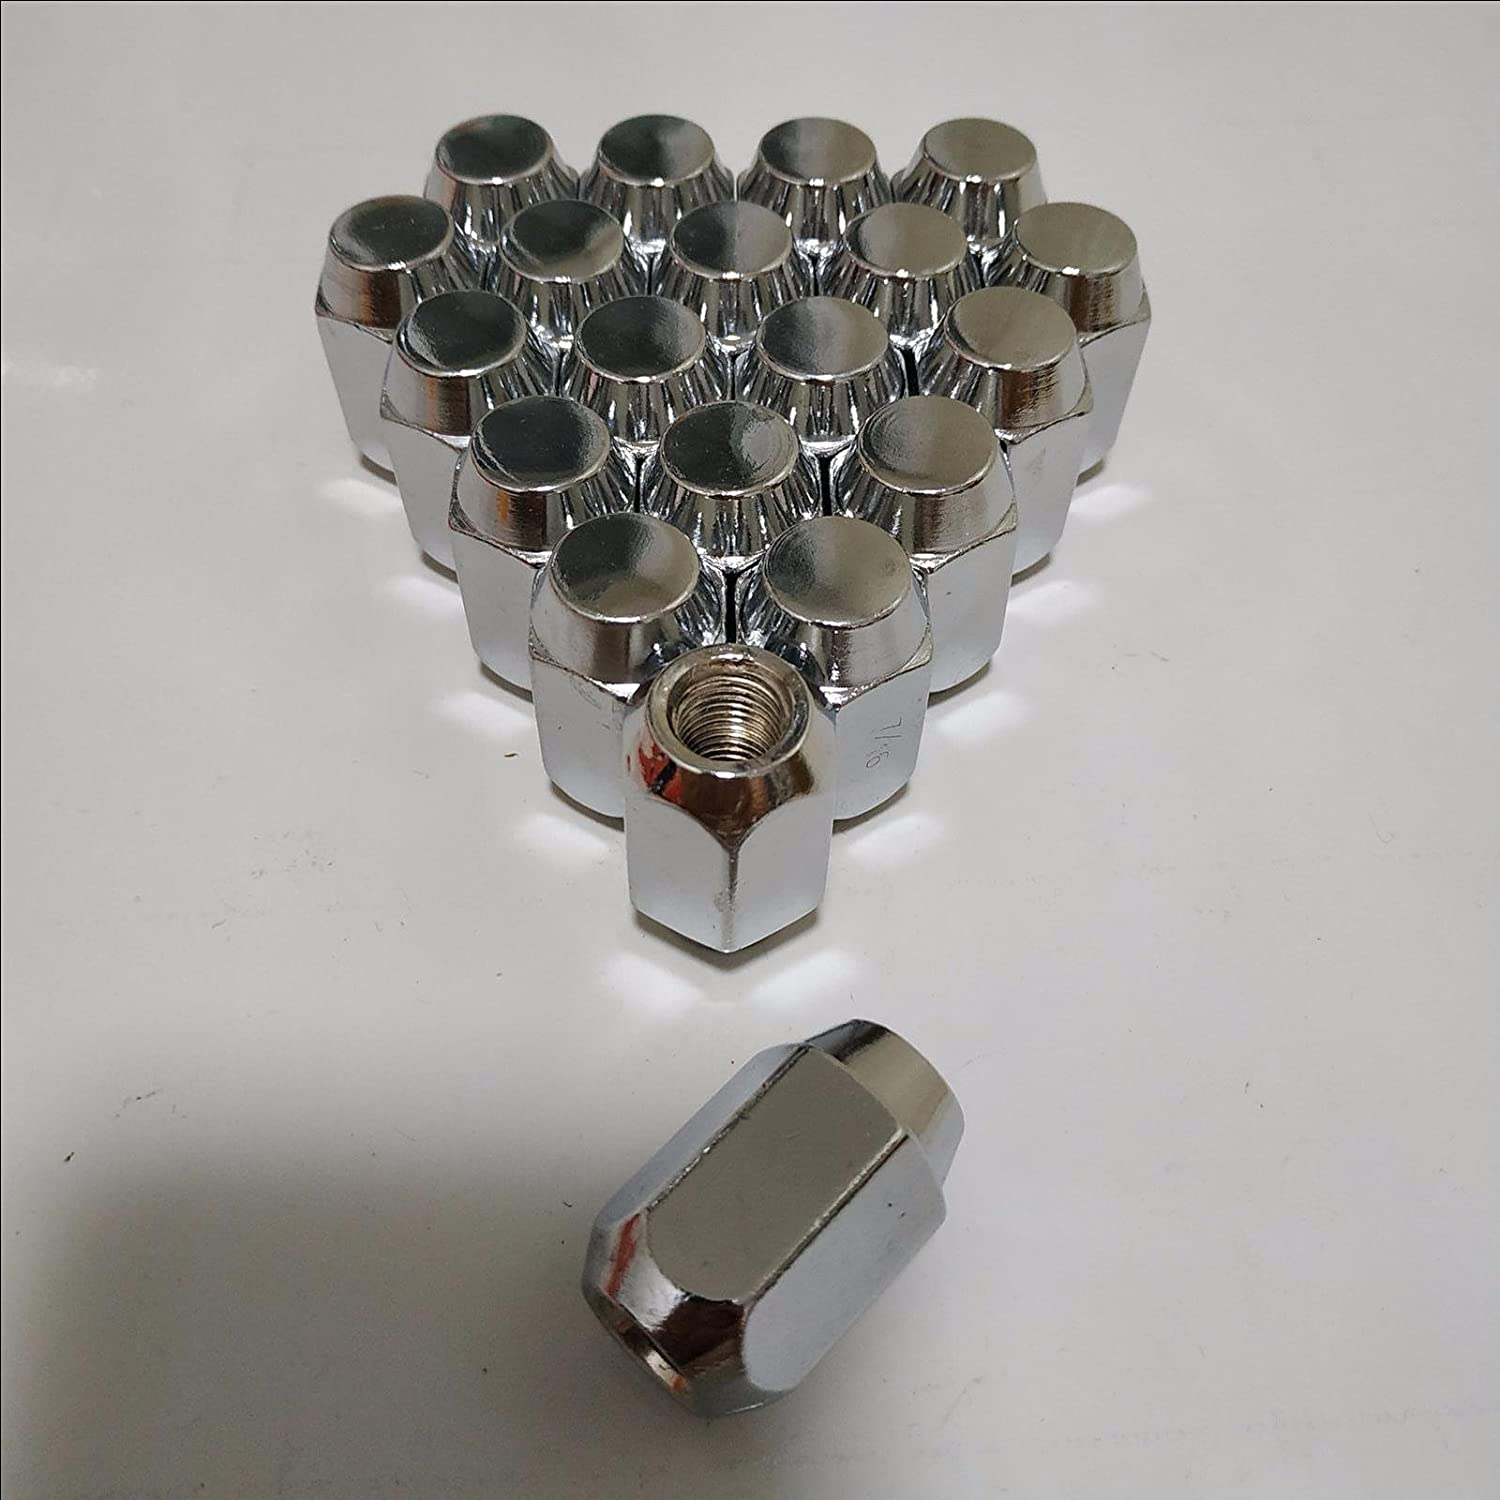 1 Set of 20 Chrome M12x1.75 Wheel Lug Nuts fit 2008 Ford Expedition May Fit OEM Rims, Buyer needs to review the spec